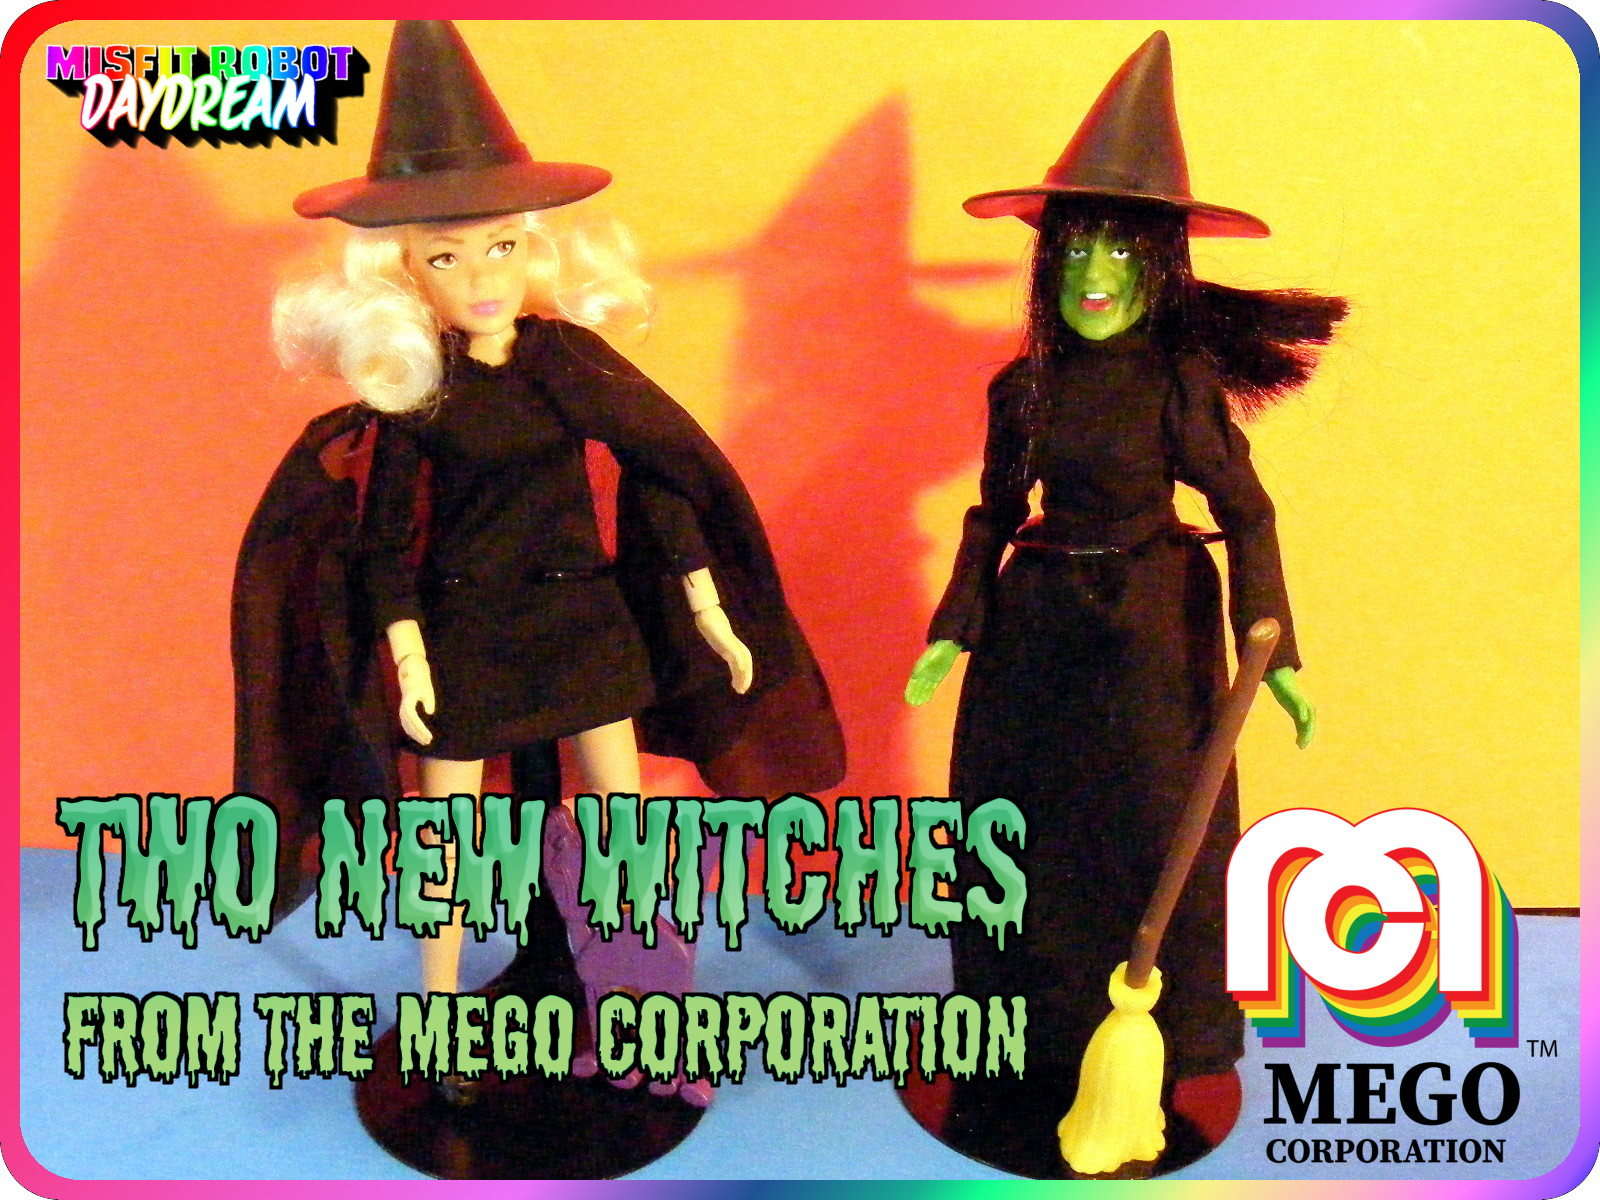 Misfit Robot Daydream Samantha From Bewitched And The Wicked